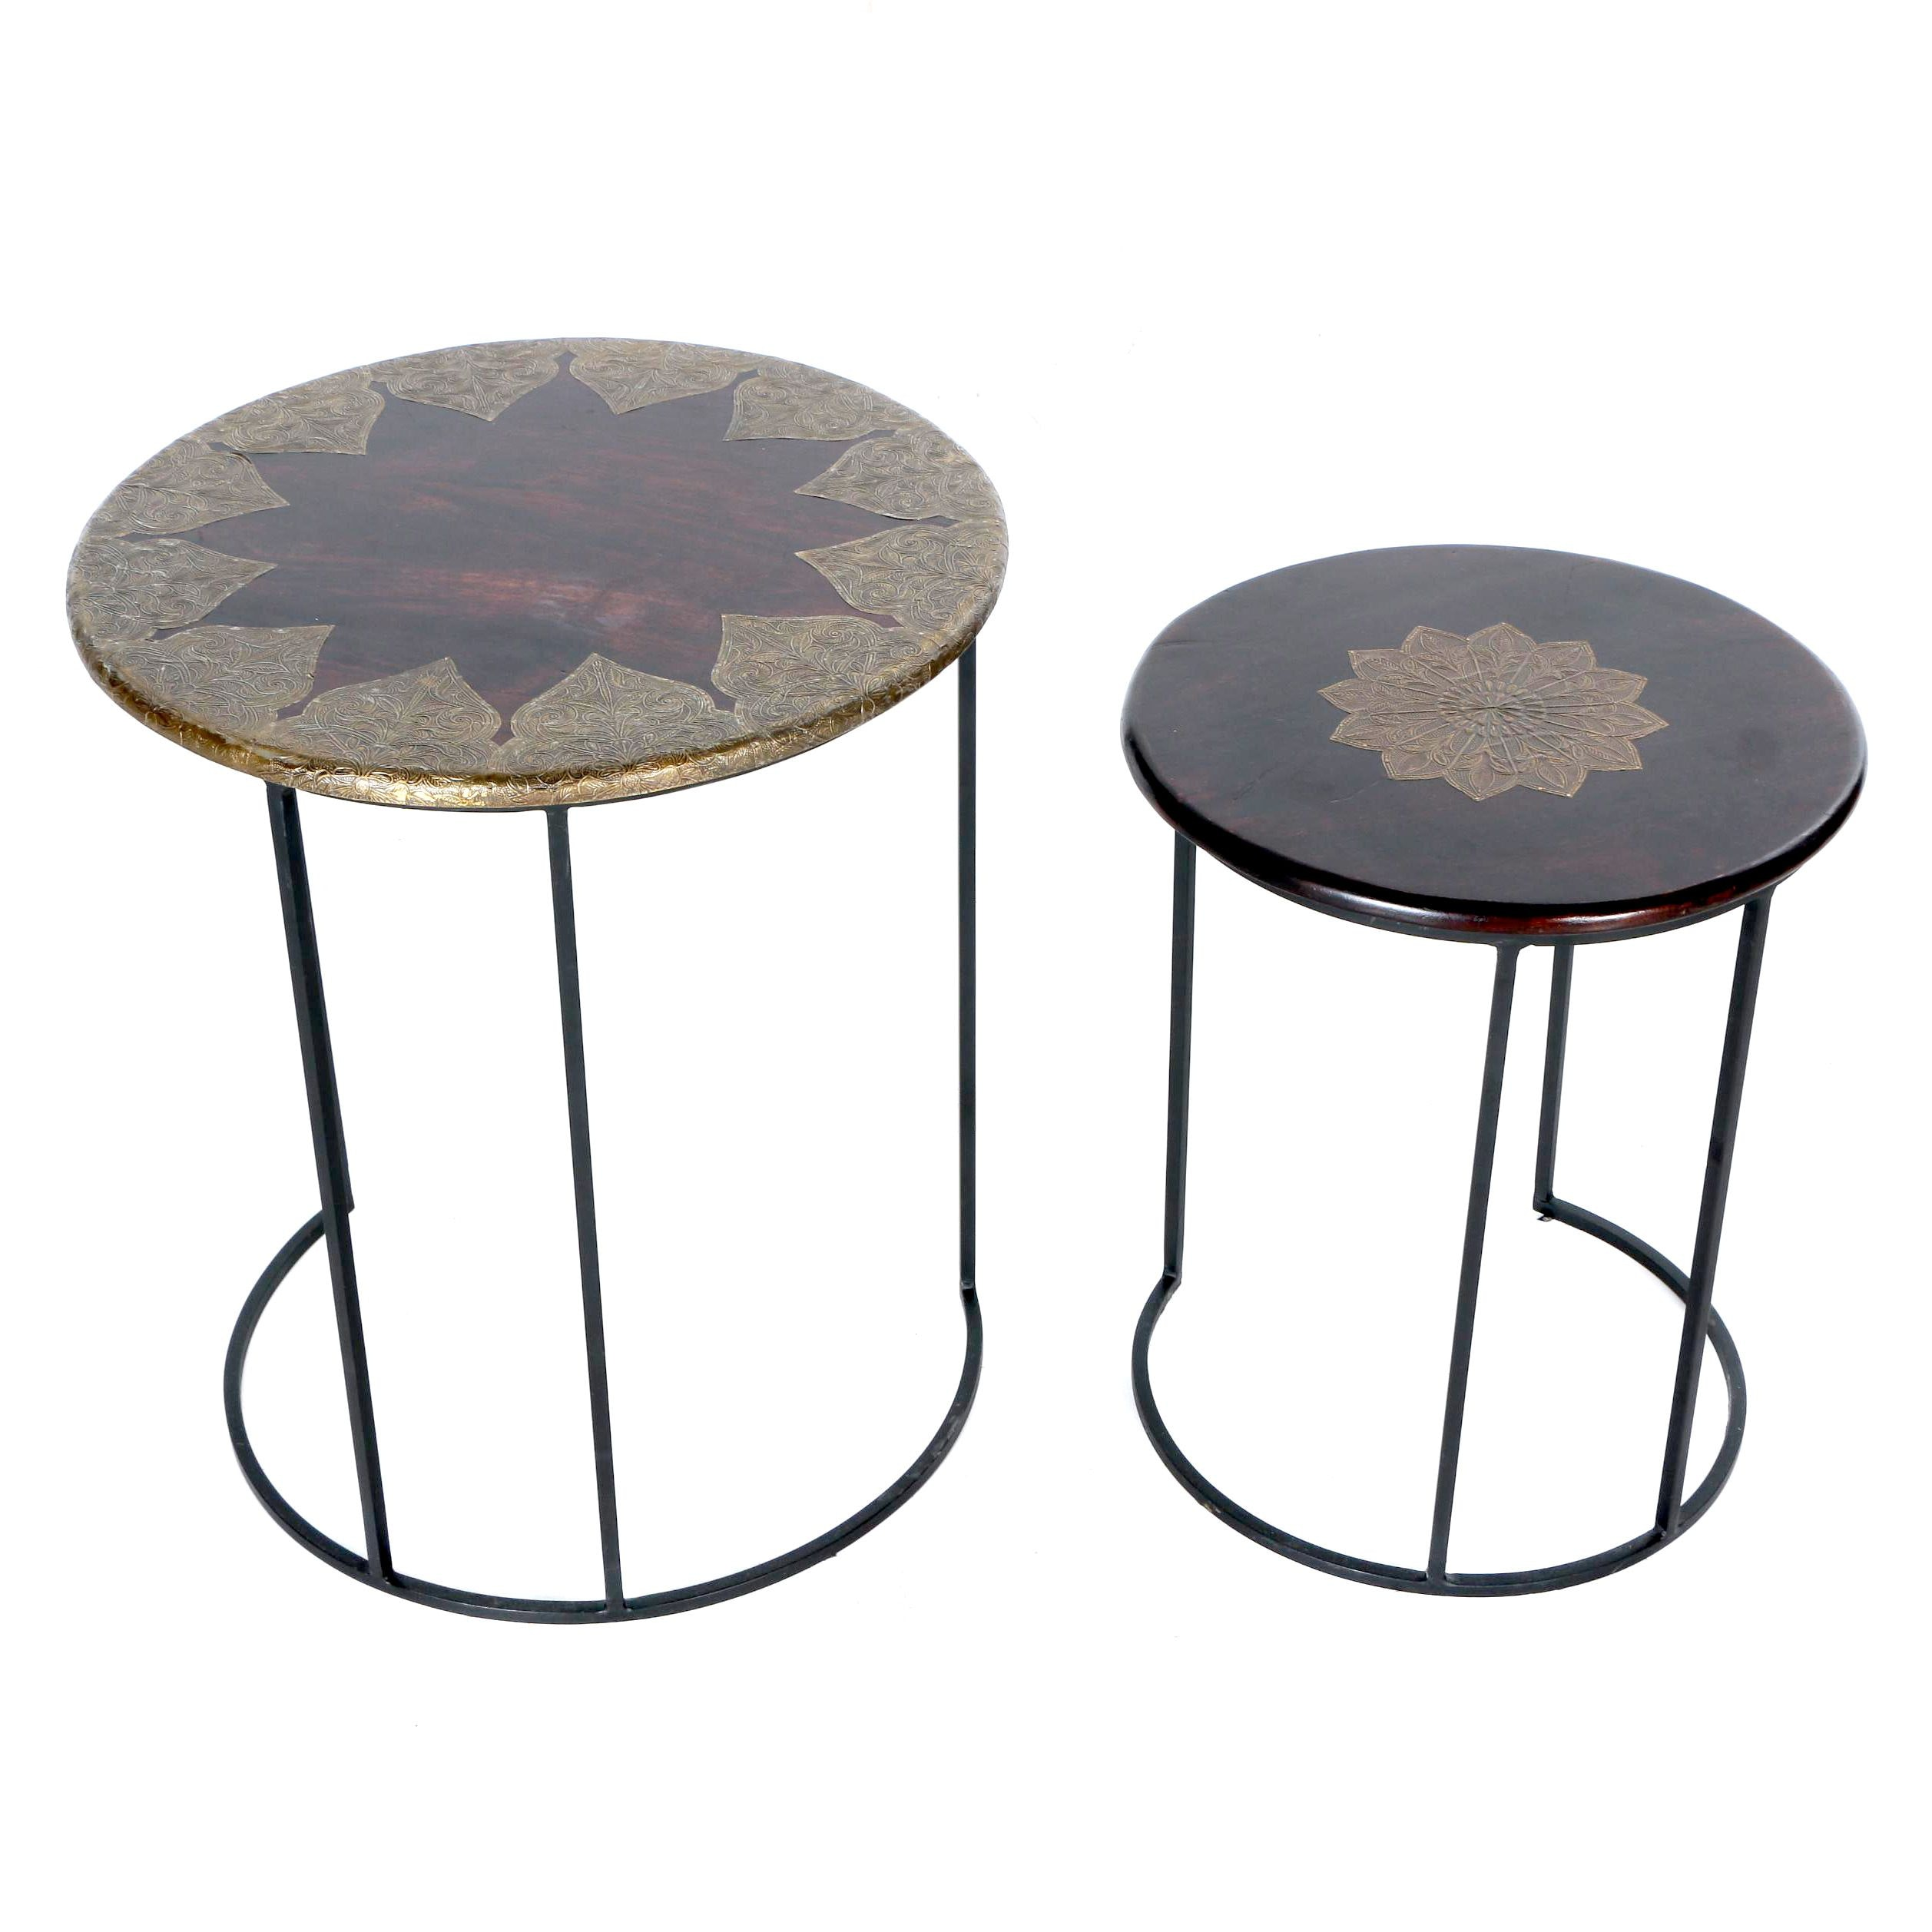 Round Nested Tables With Embossed Metal